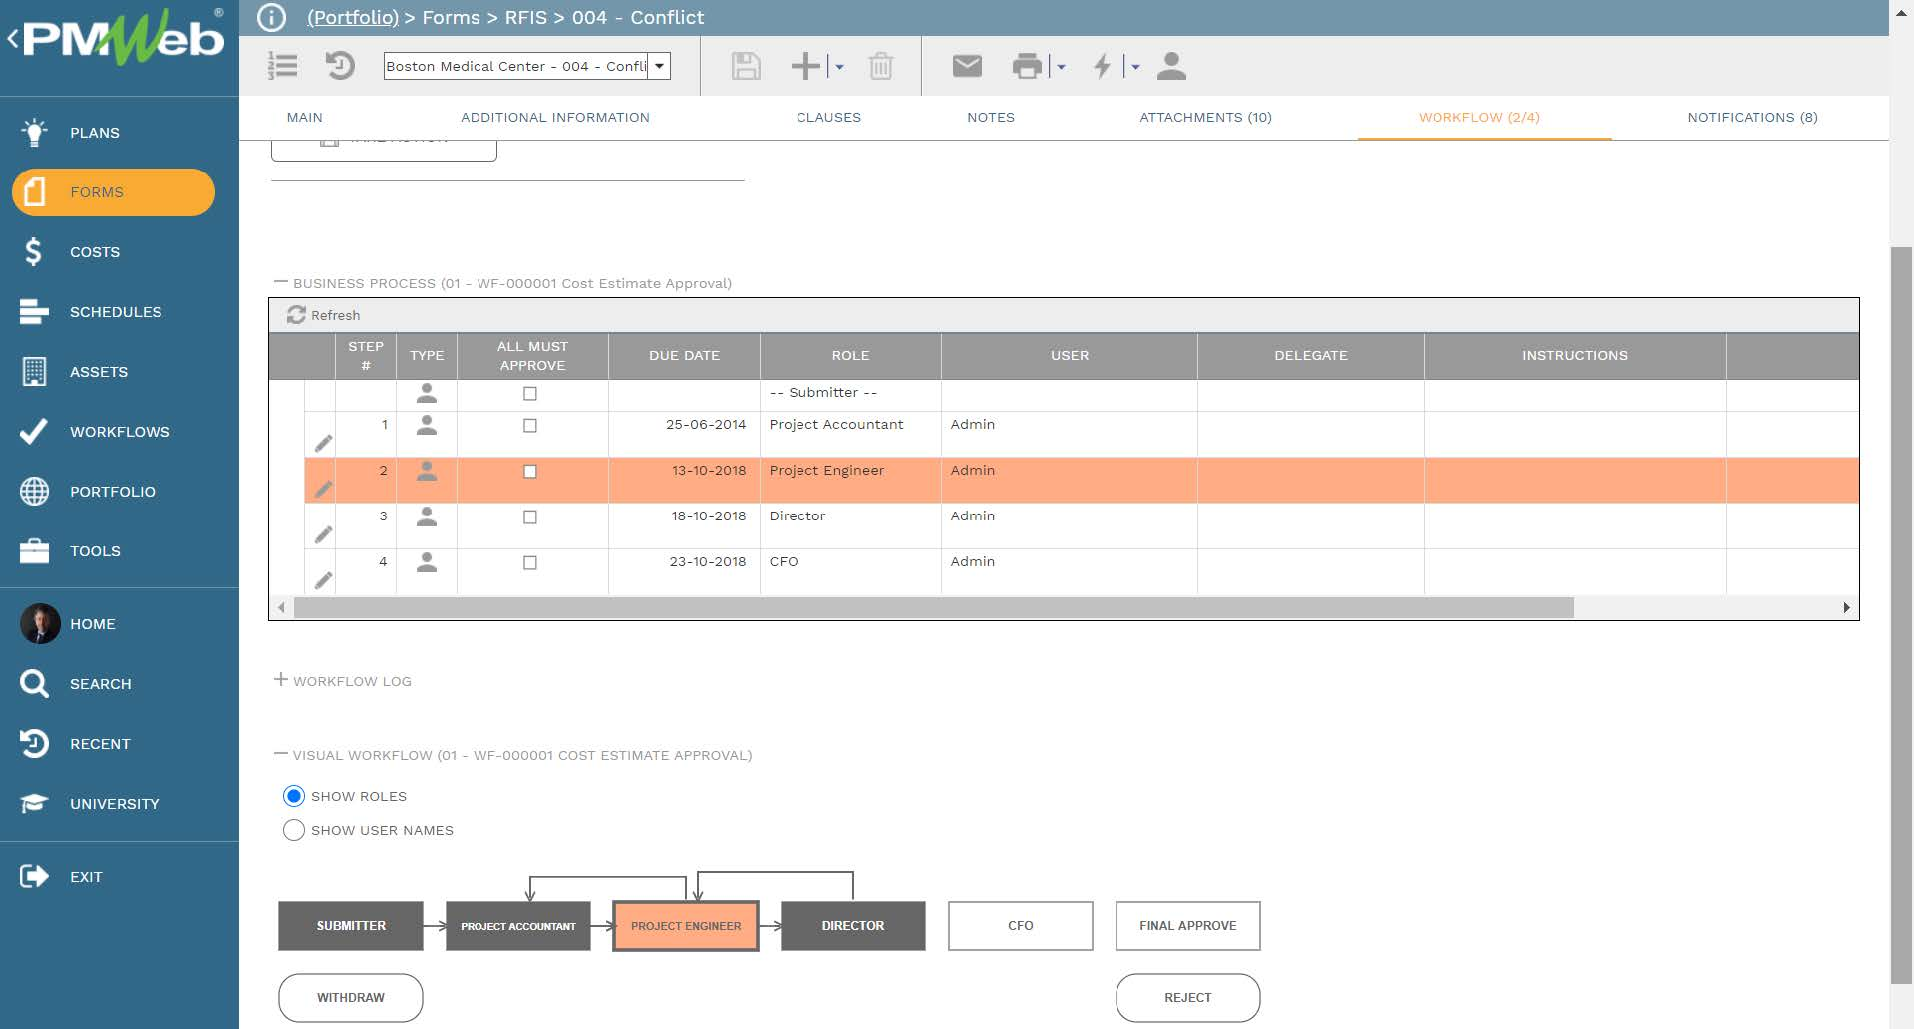 PMWeb 7 Forms RFIs Conflict Workflow